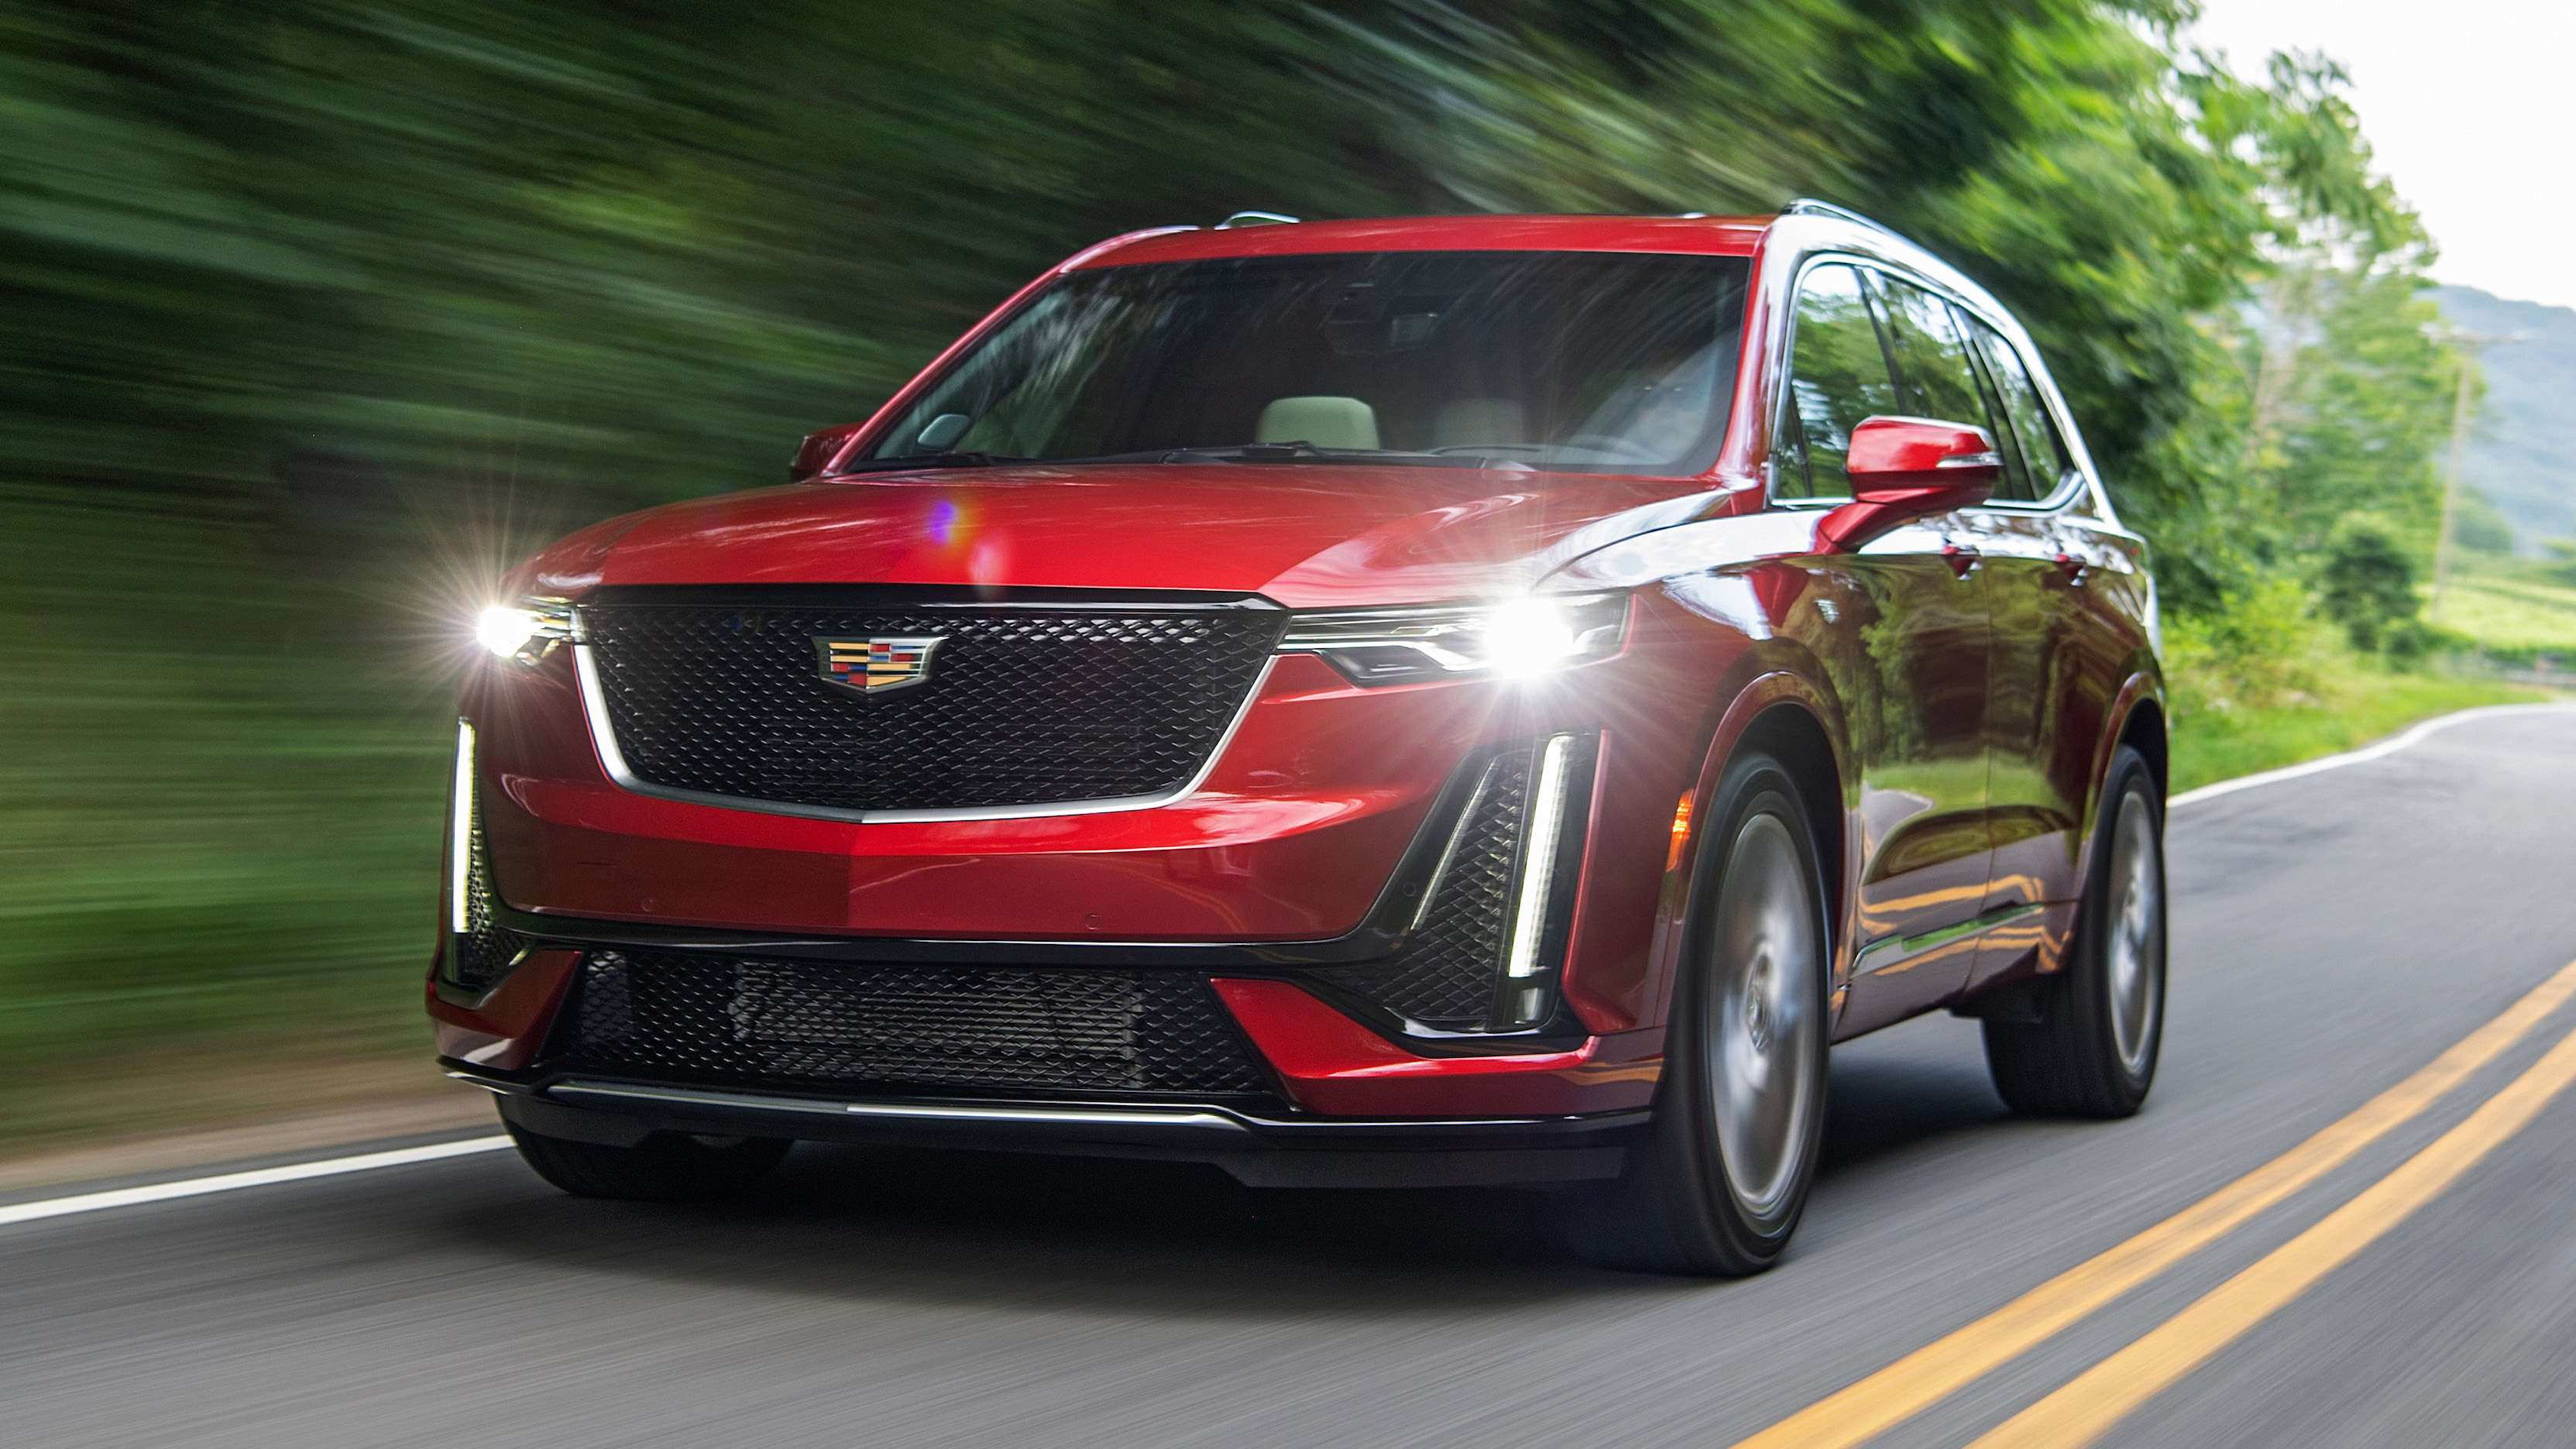 60 The Cadillac Xt6 2020 Release Date by Cadillac Xt6 2020